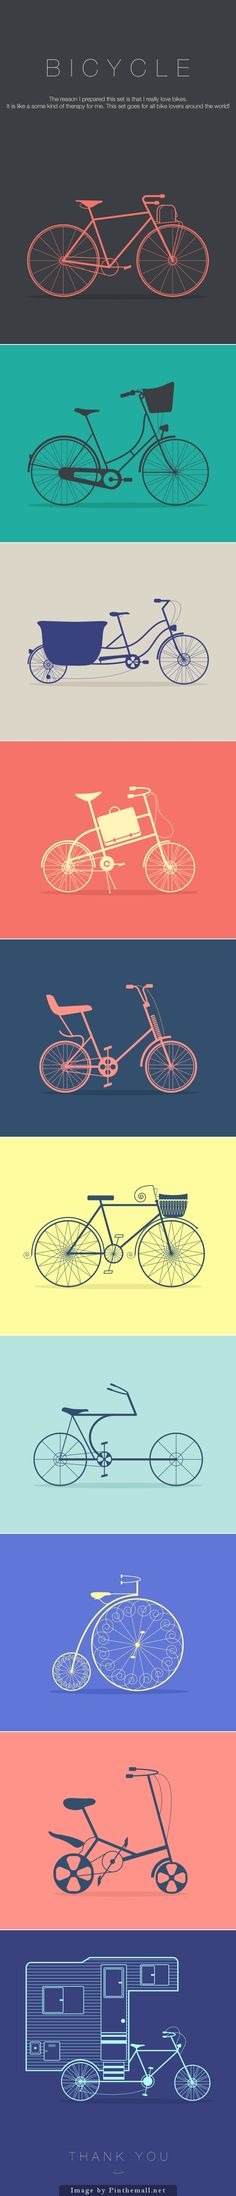 Bike messenger radio call clipart png free library 64 Best bicycle sketches images in 2016 | Bicycle sketch, Bicycle ... png free library